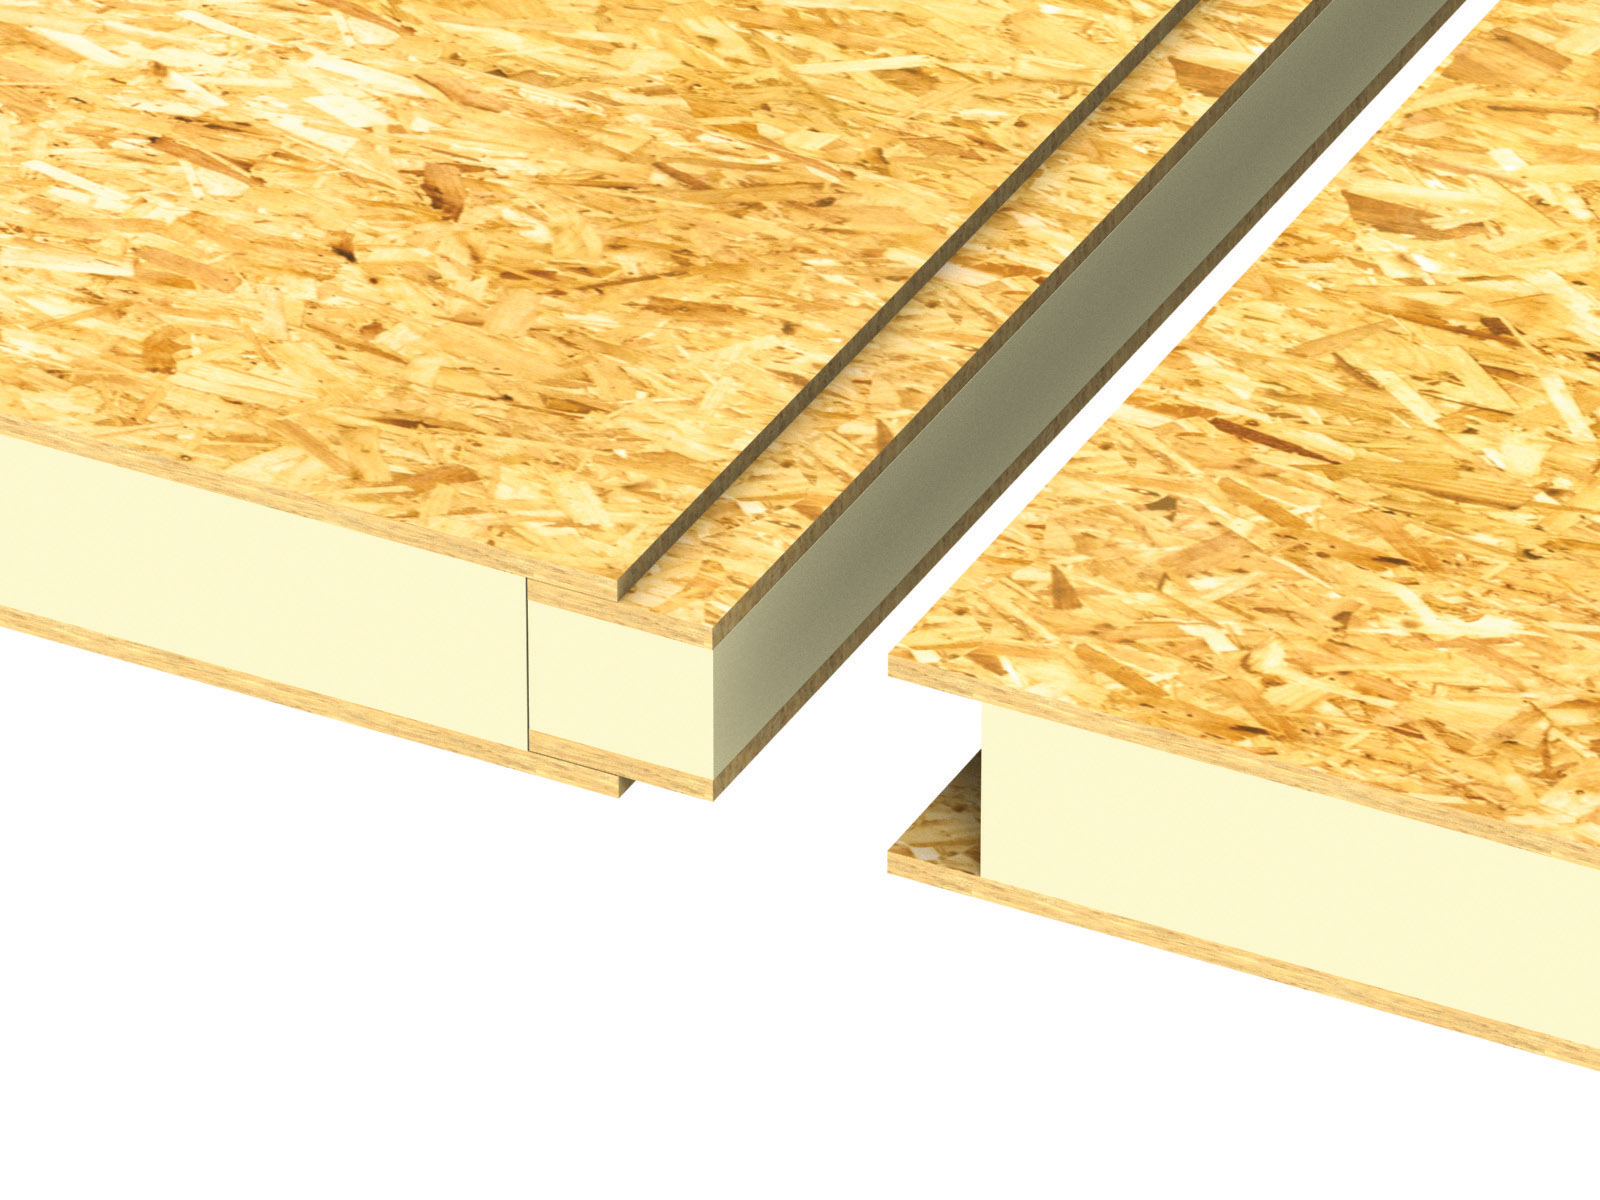 Wall Structural Insulated Panels : Typical details of construction elements ecotek